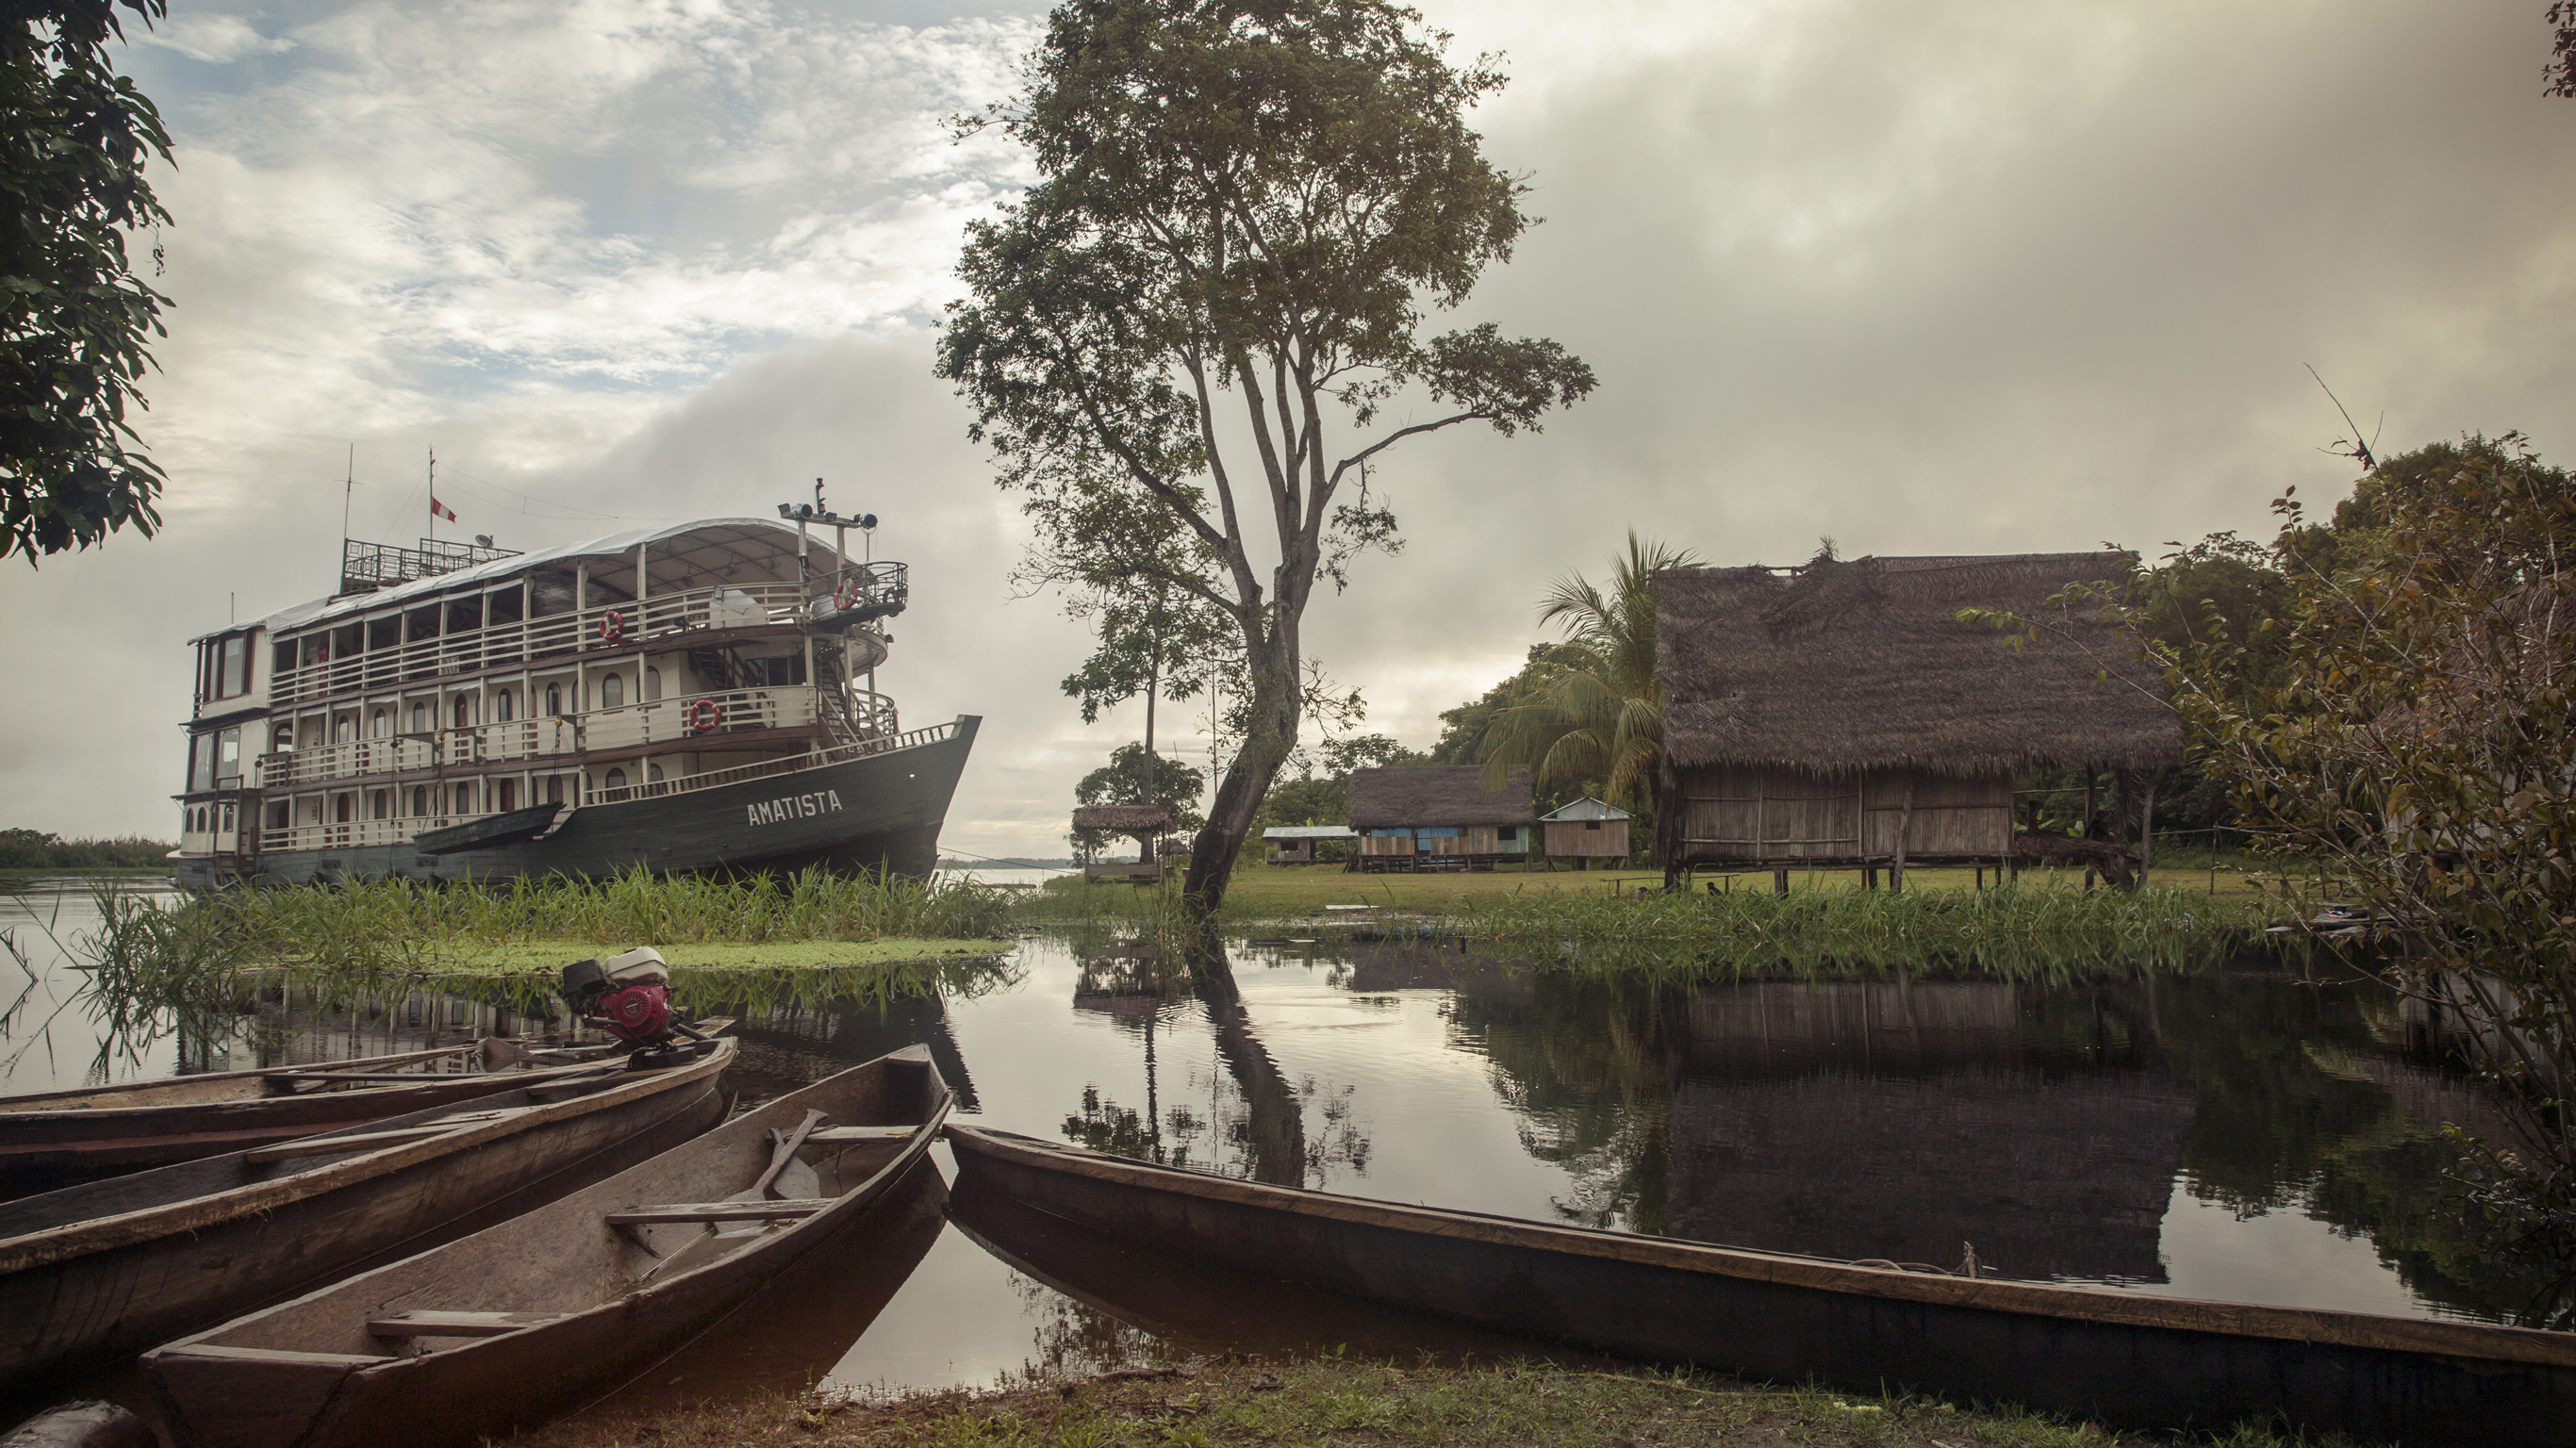 Amazon Riverboat Adventure In Depth by G Adventures with 20 Tour Reviews (Code: PVIIA) - TourRadar